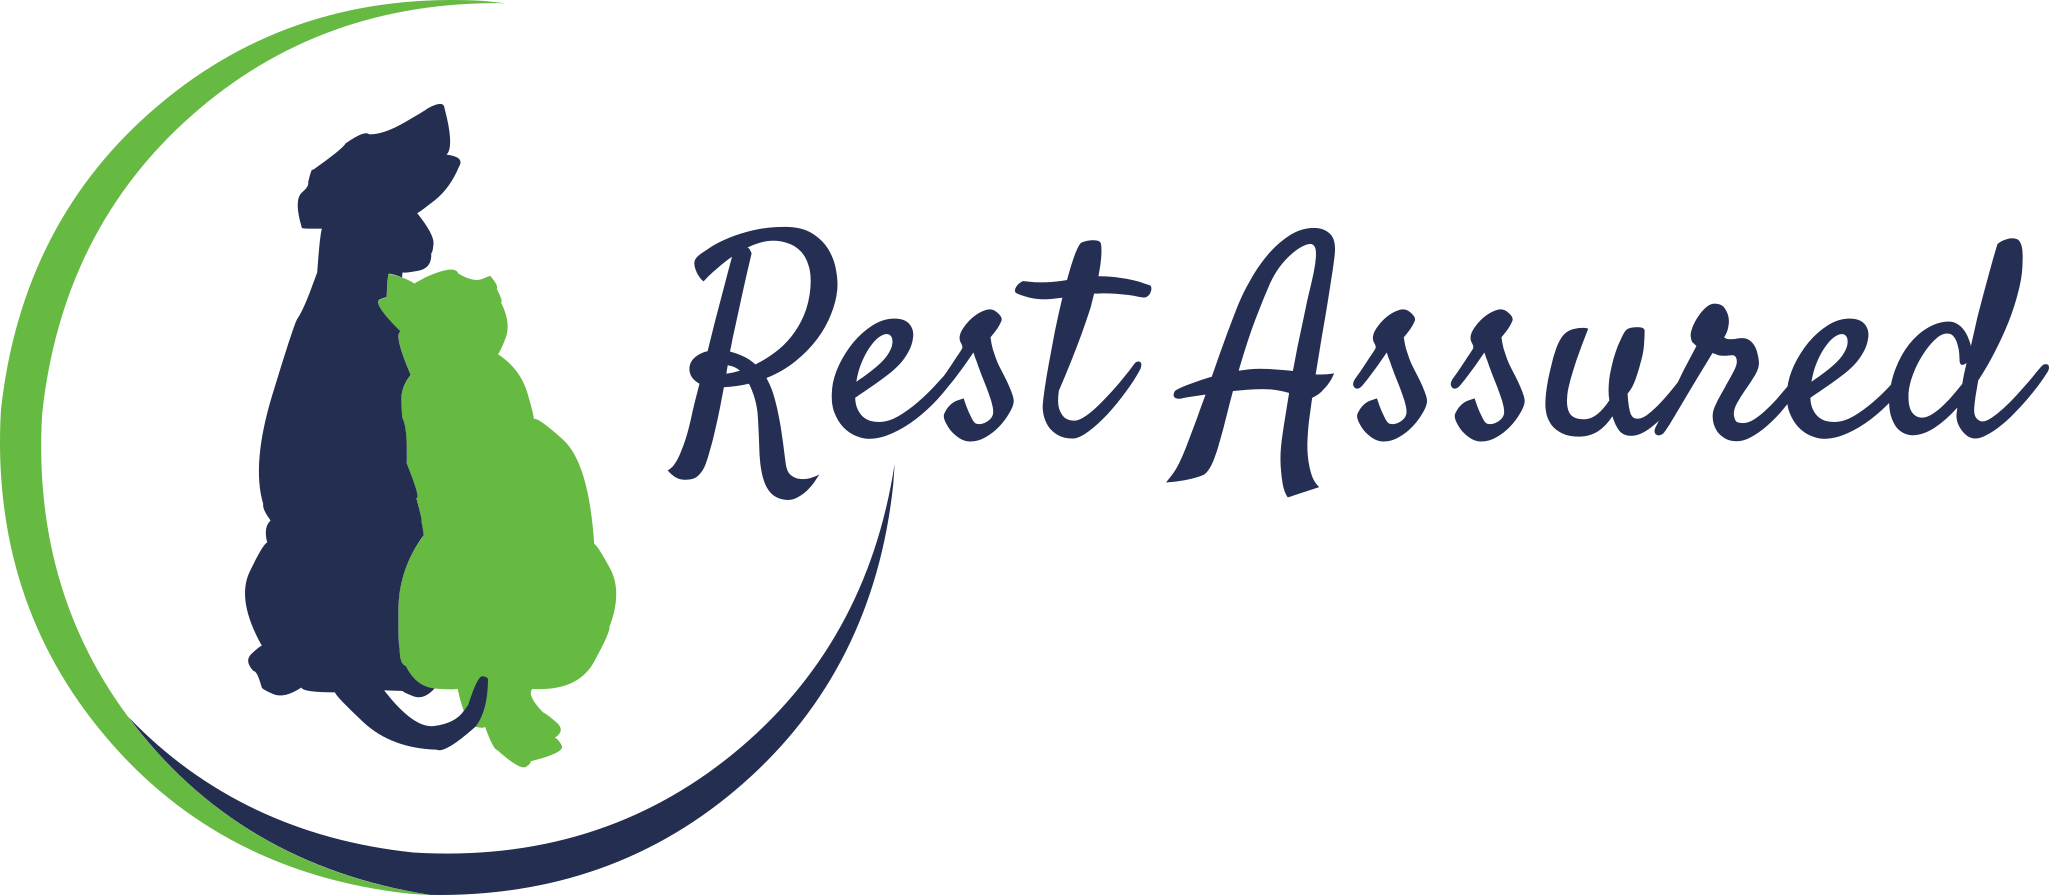 Rest Assured Pets - End of Life care for pets